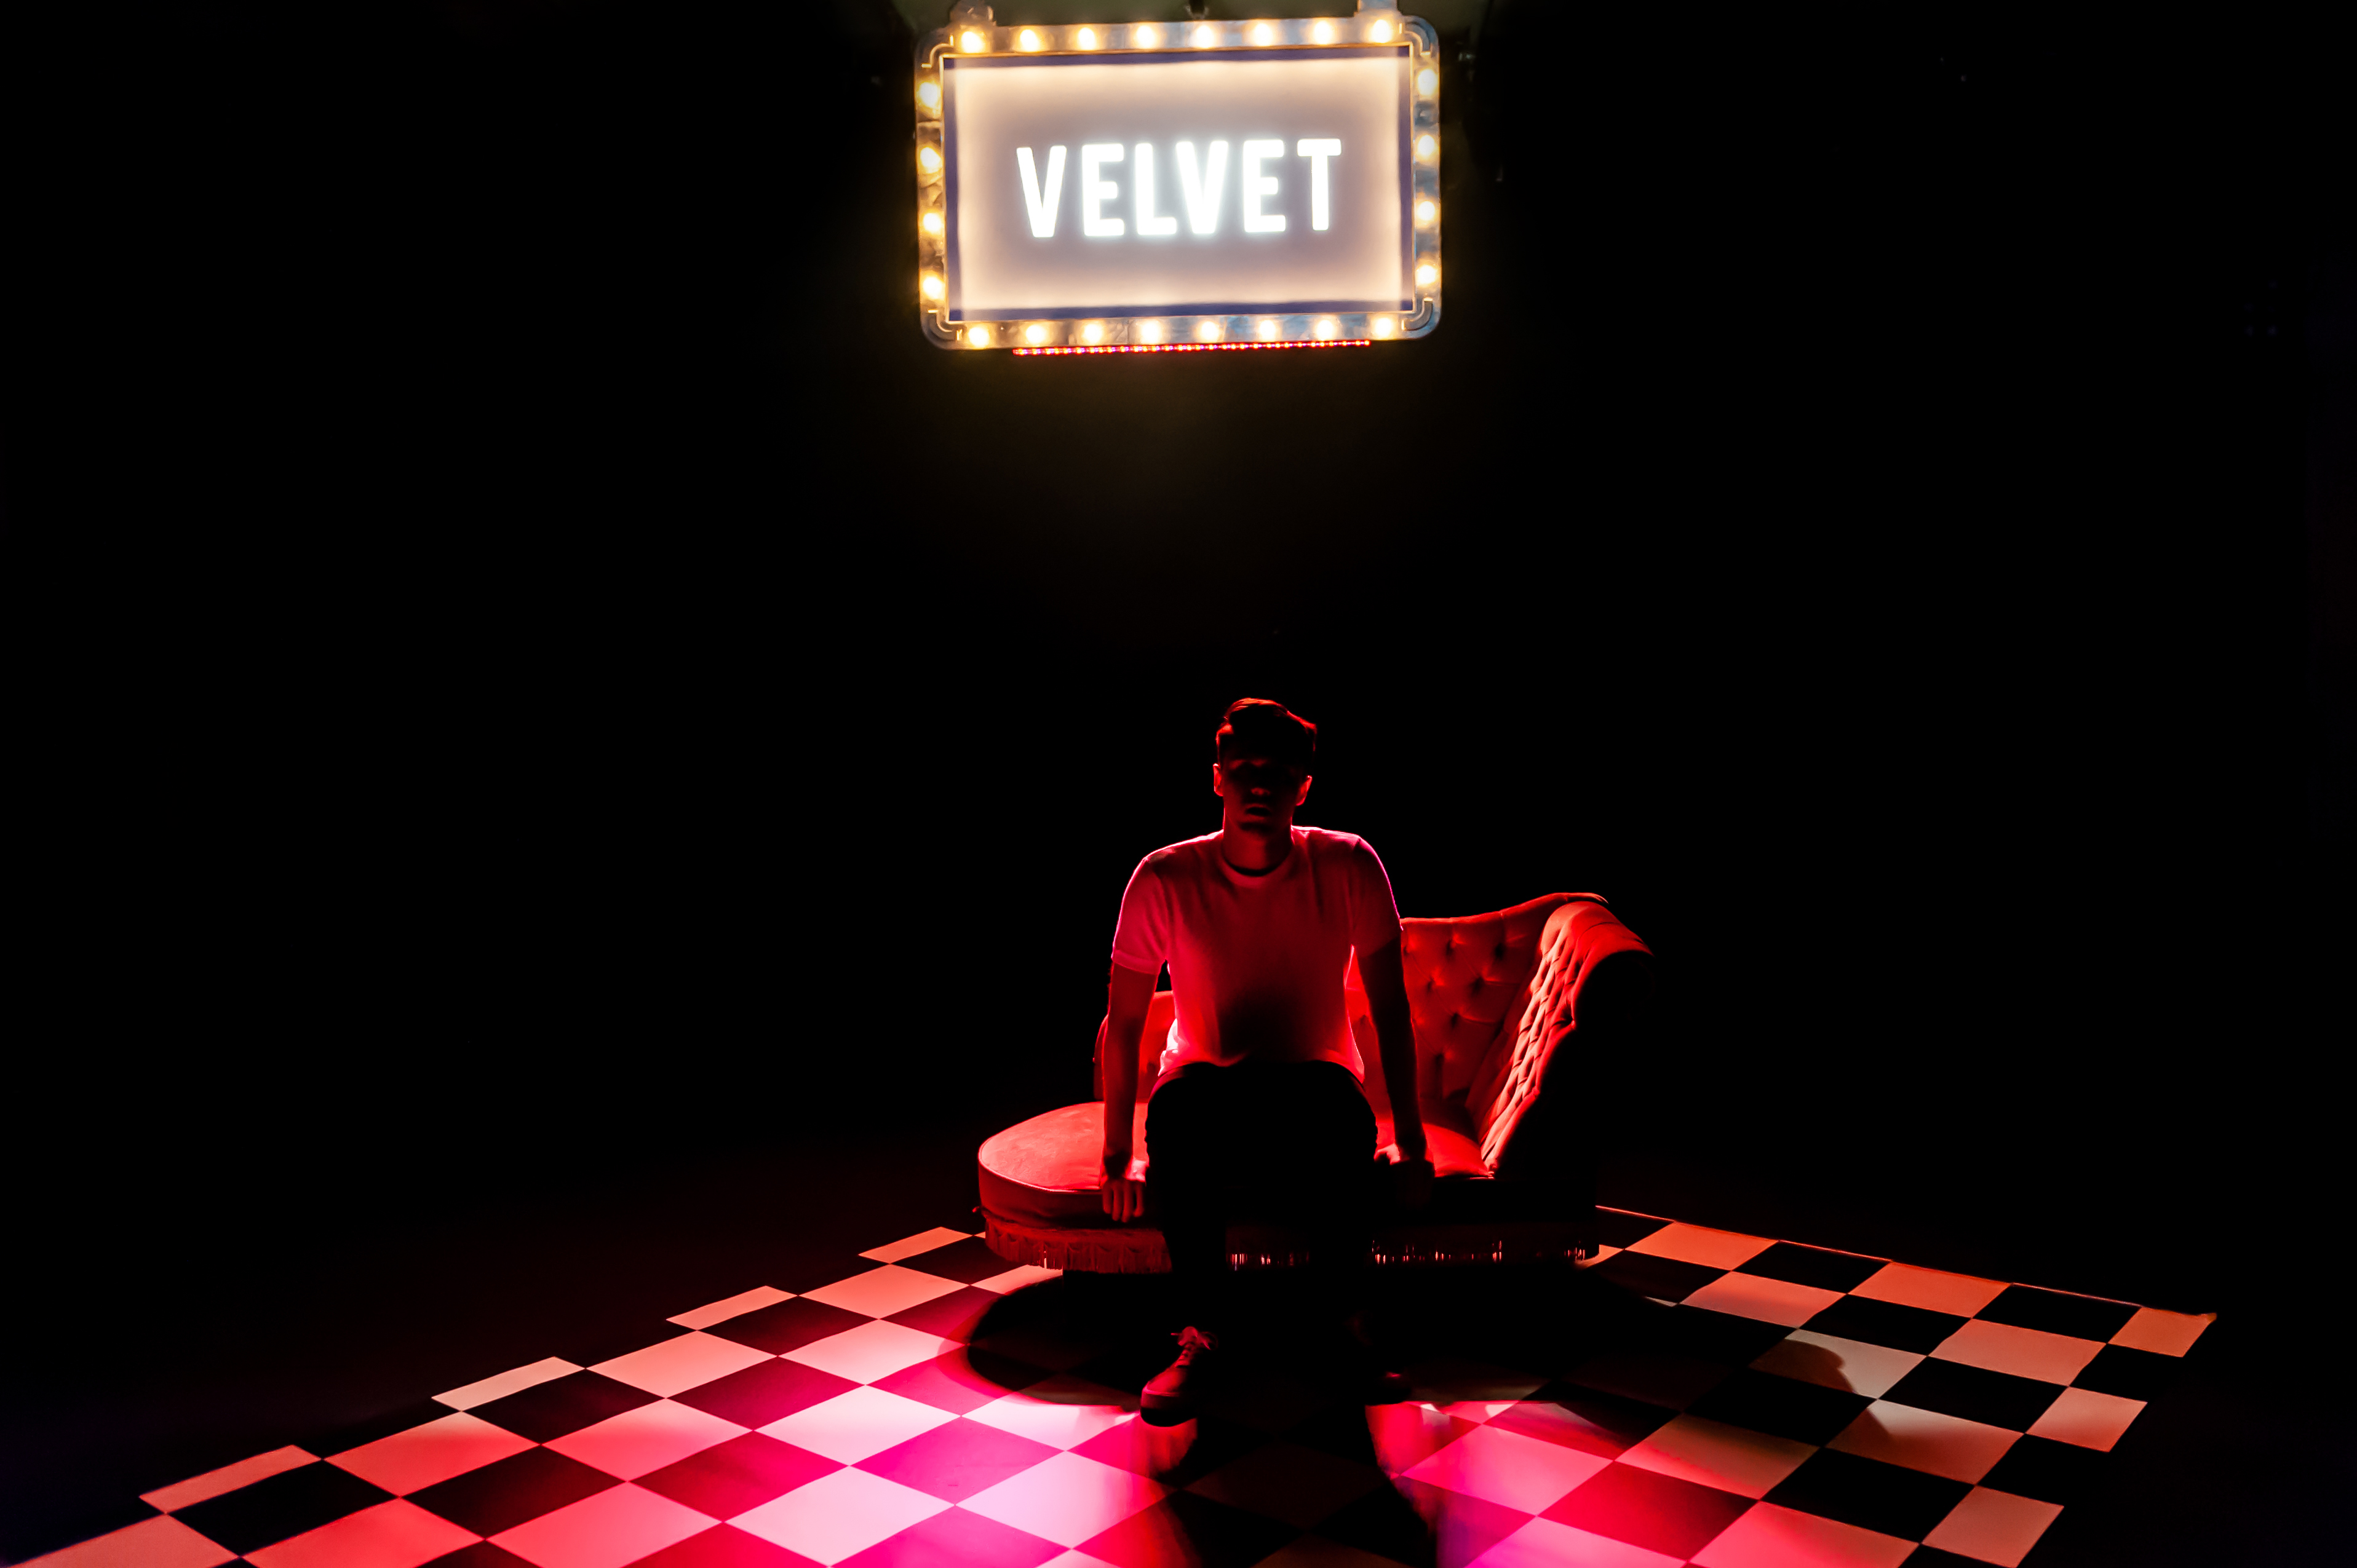 Interview: Tom Ratcliffe hopes Velvet will empower emerging actors faced with entertainment industry harassment